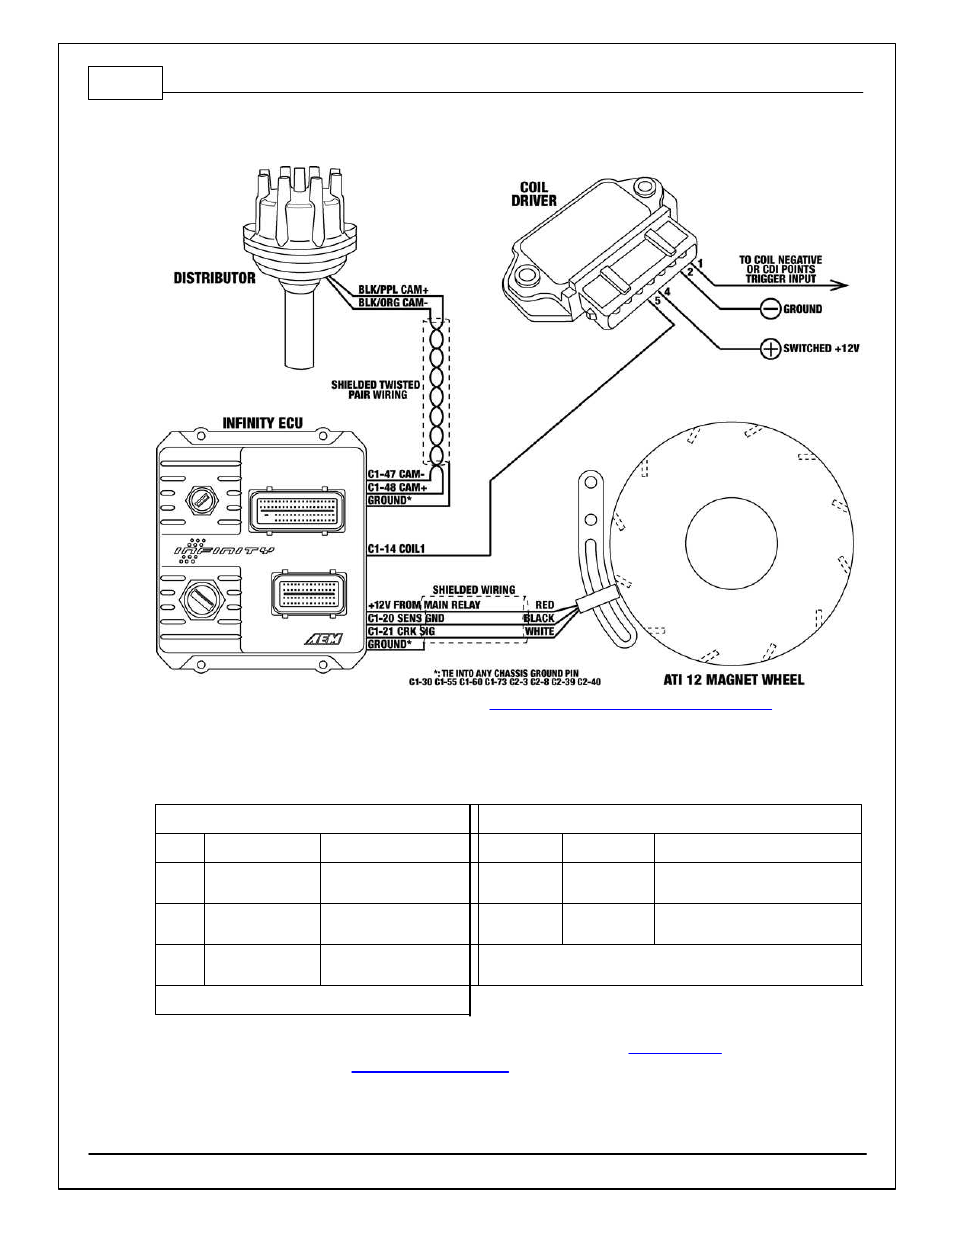 AEM Infinity Supported Applications - Universal V8 Engine User Manual |  Page 16 / 46